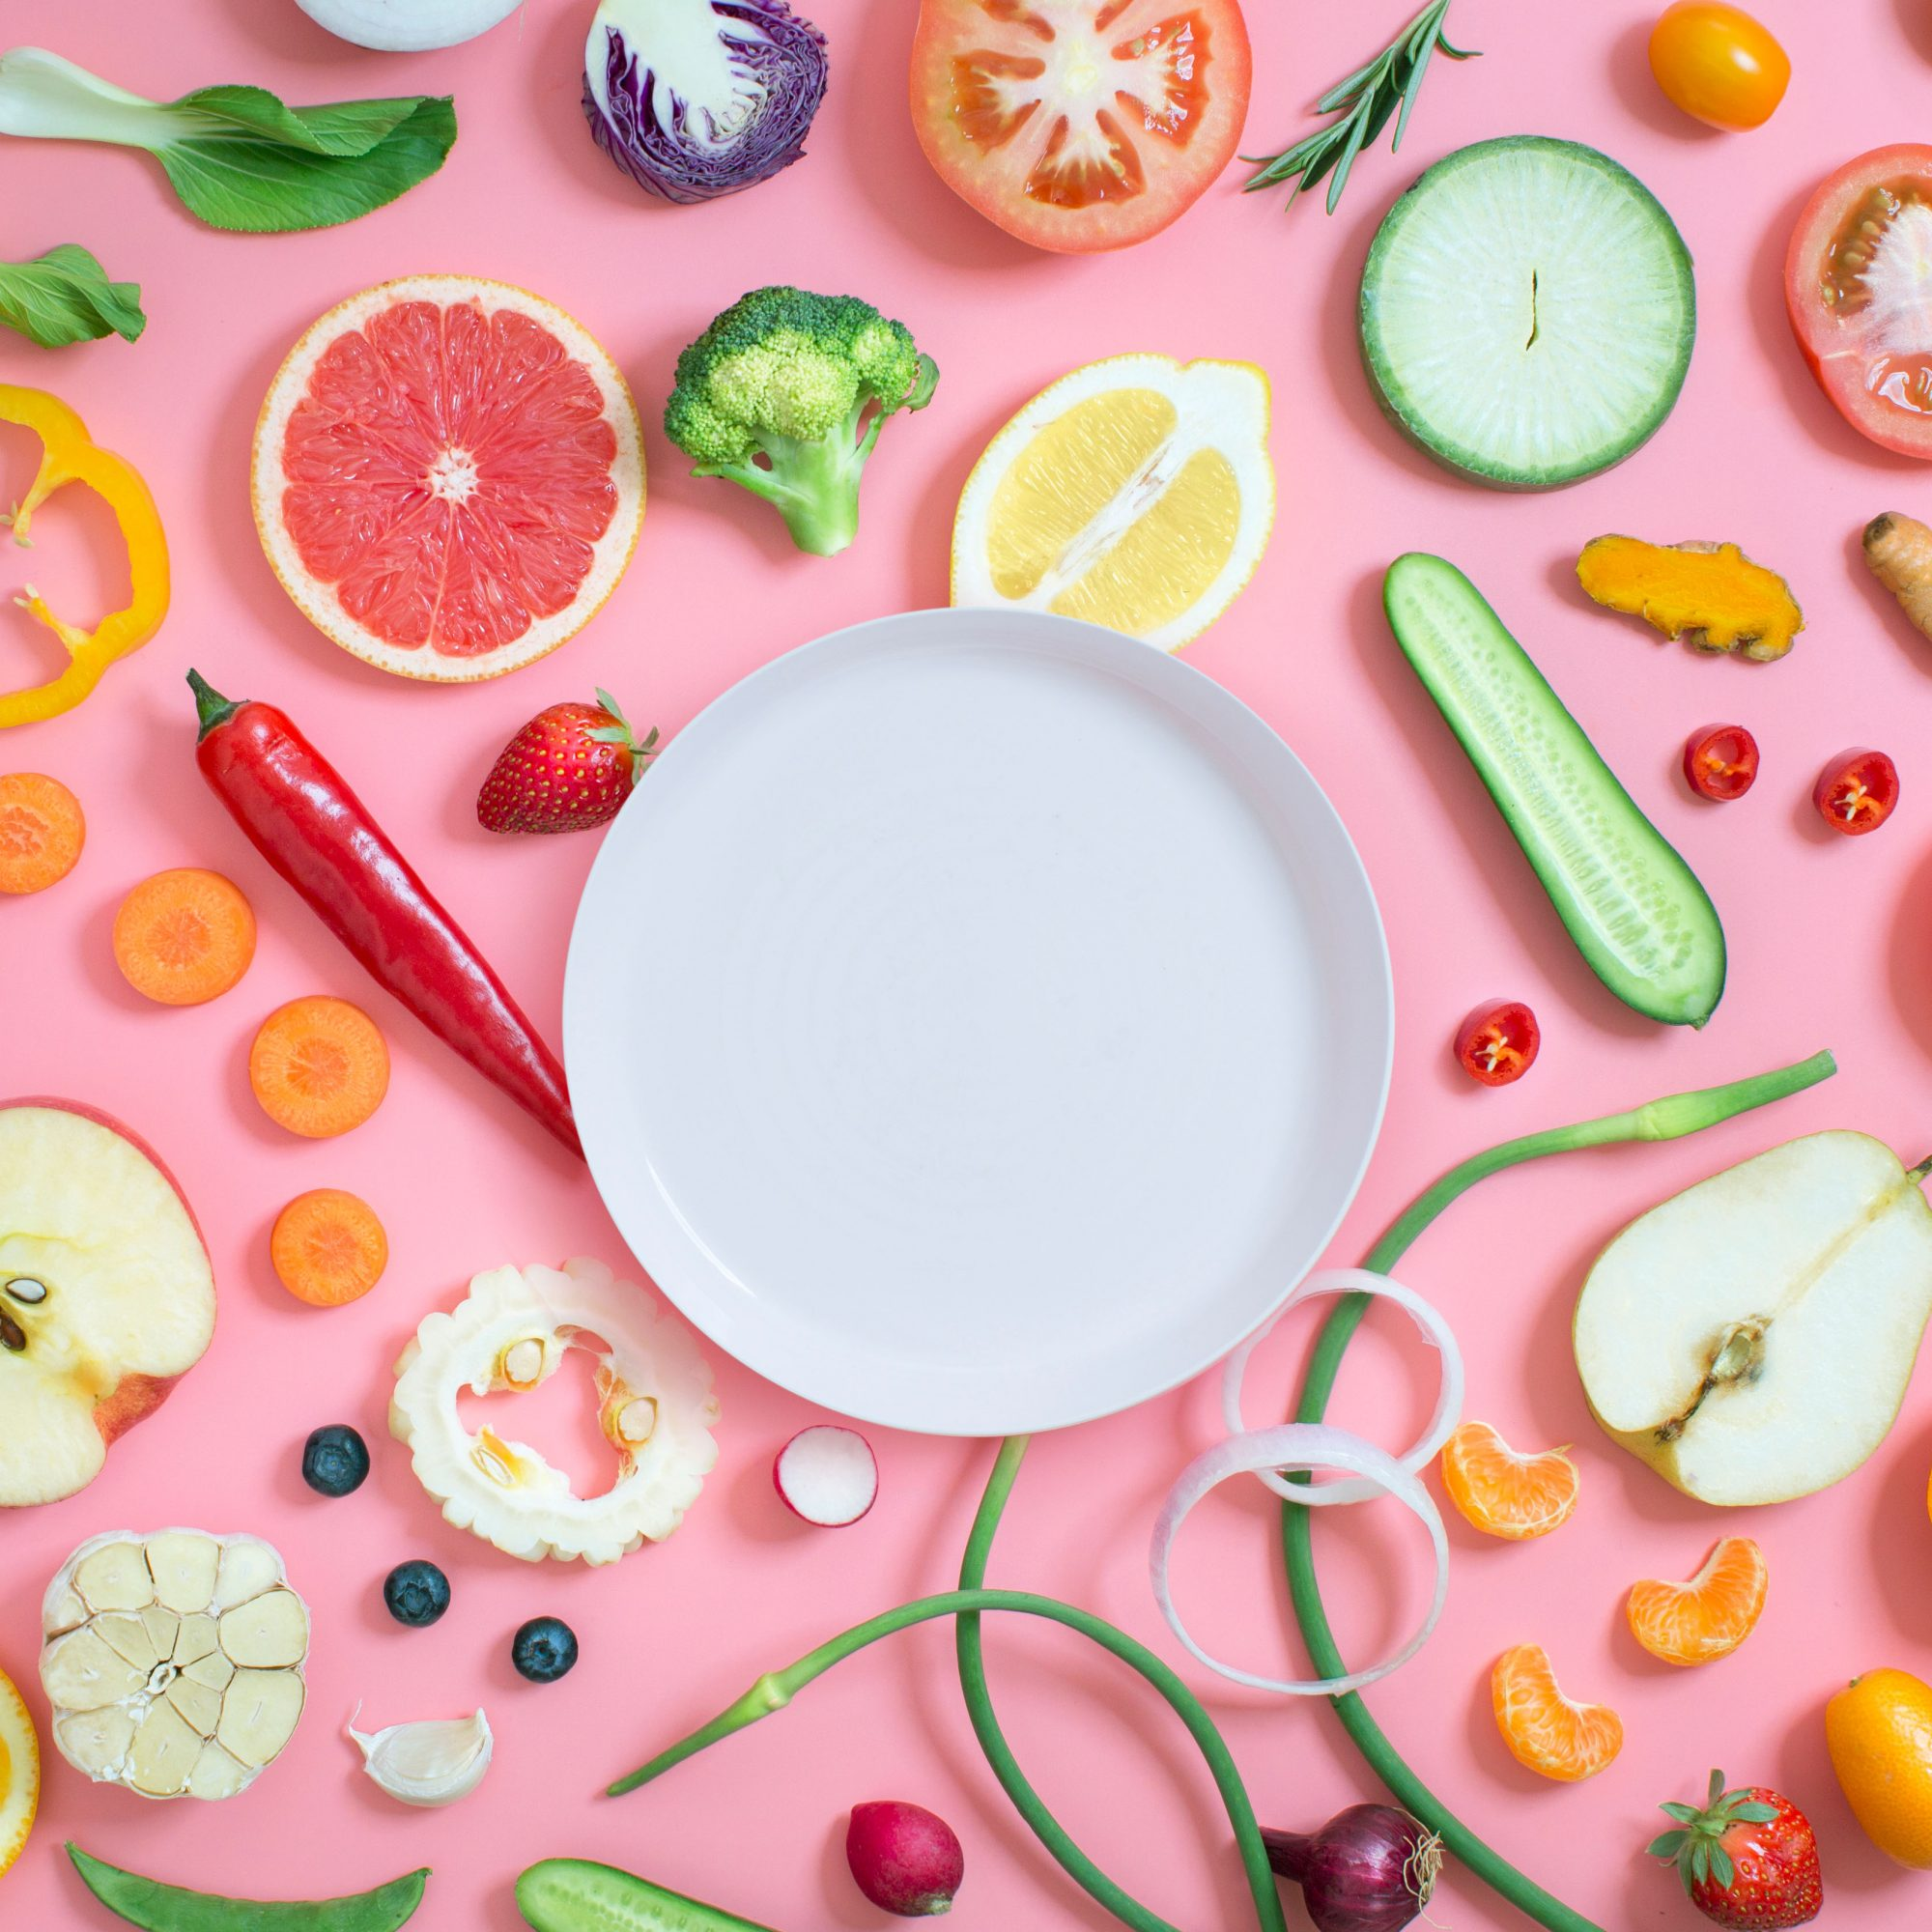 Colorful_Fruits_and_Vegetables_Scattered_Around_A_White_Plate